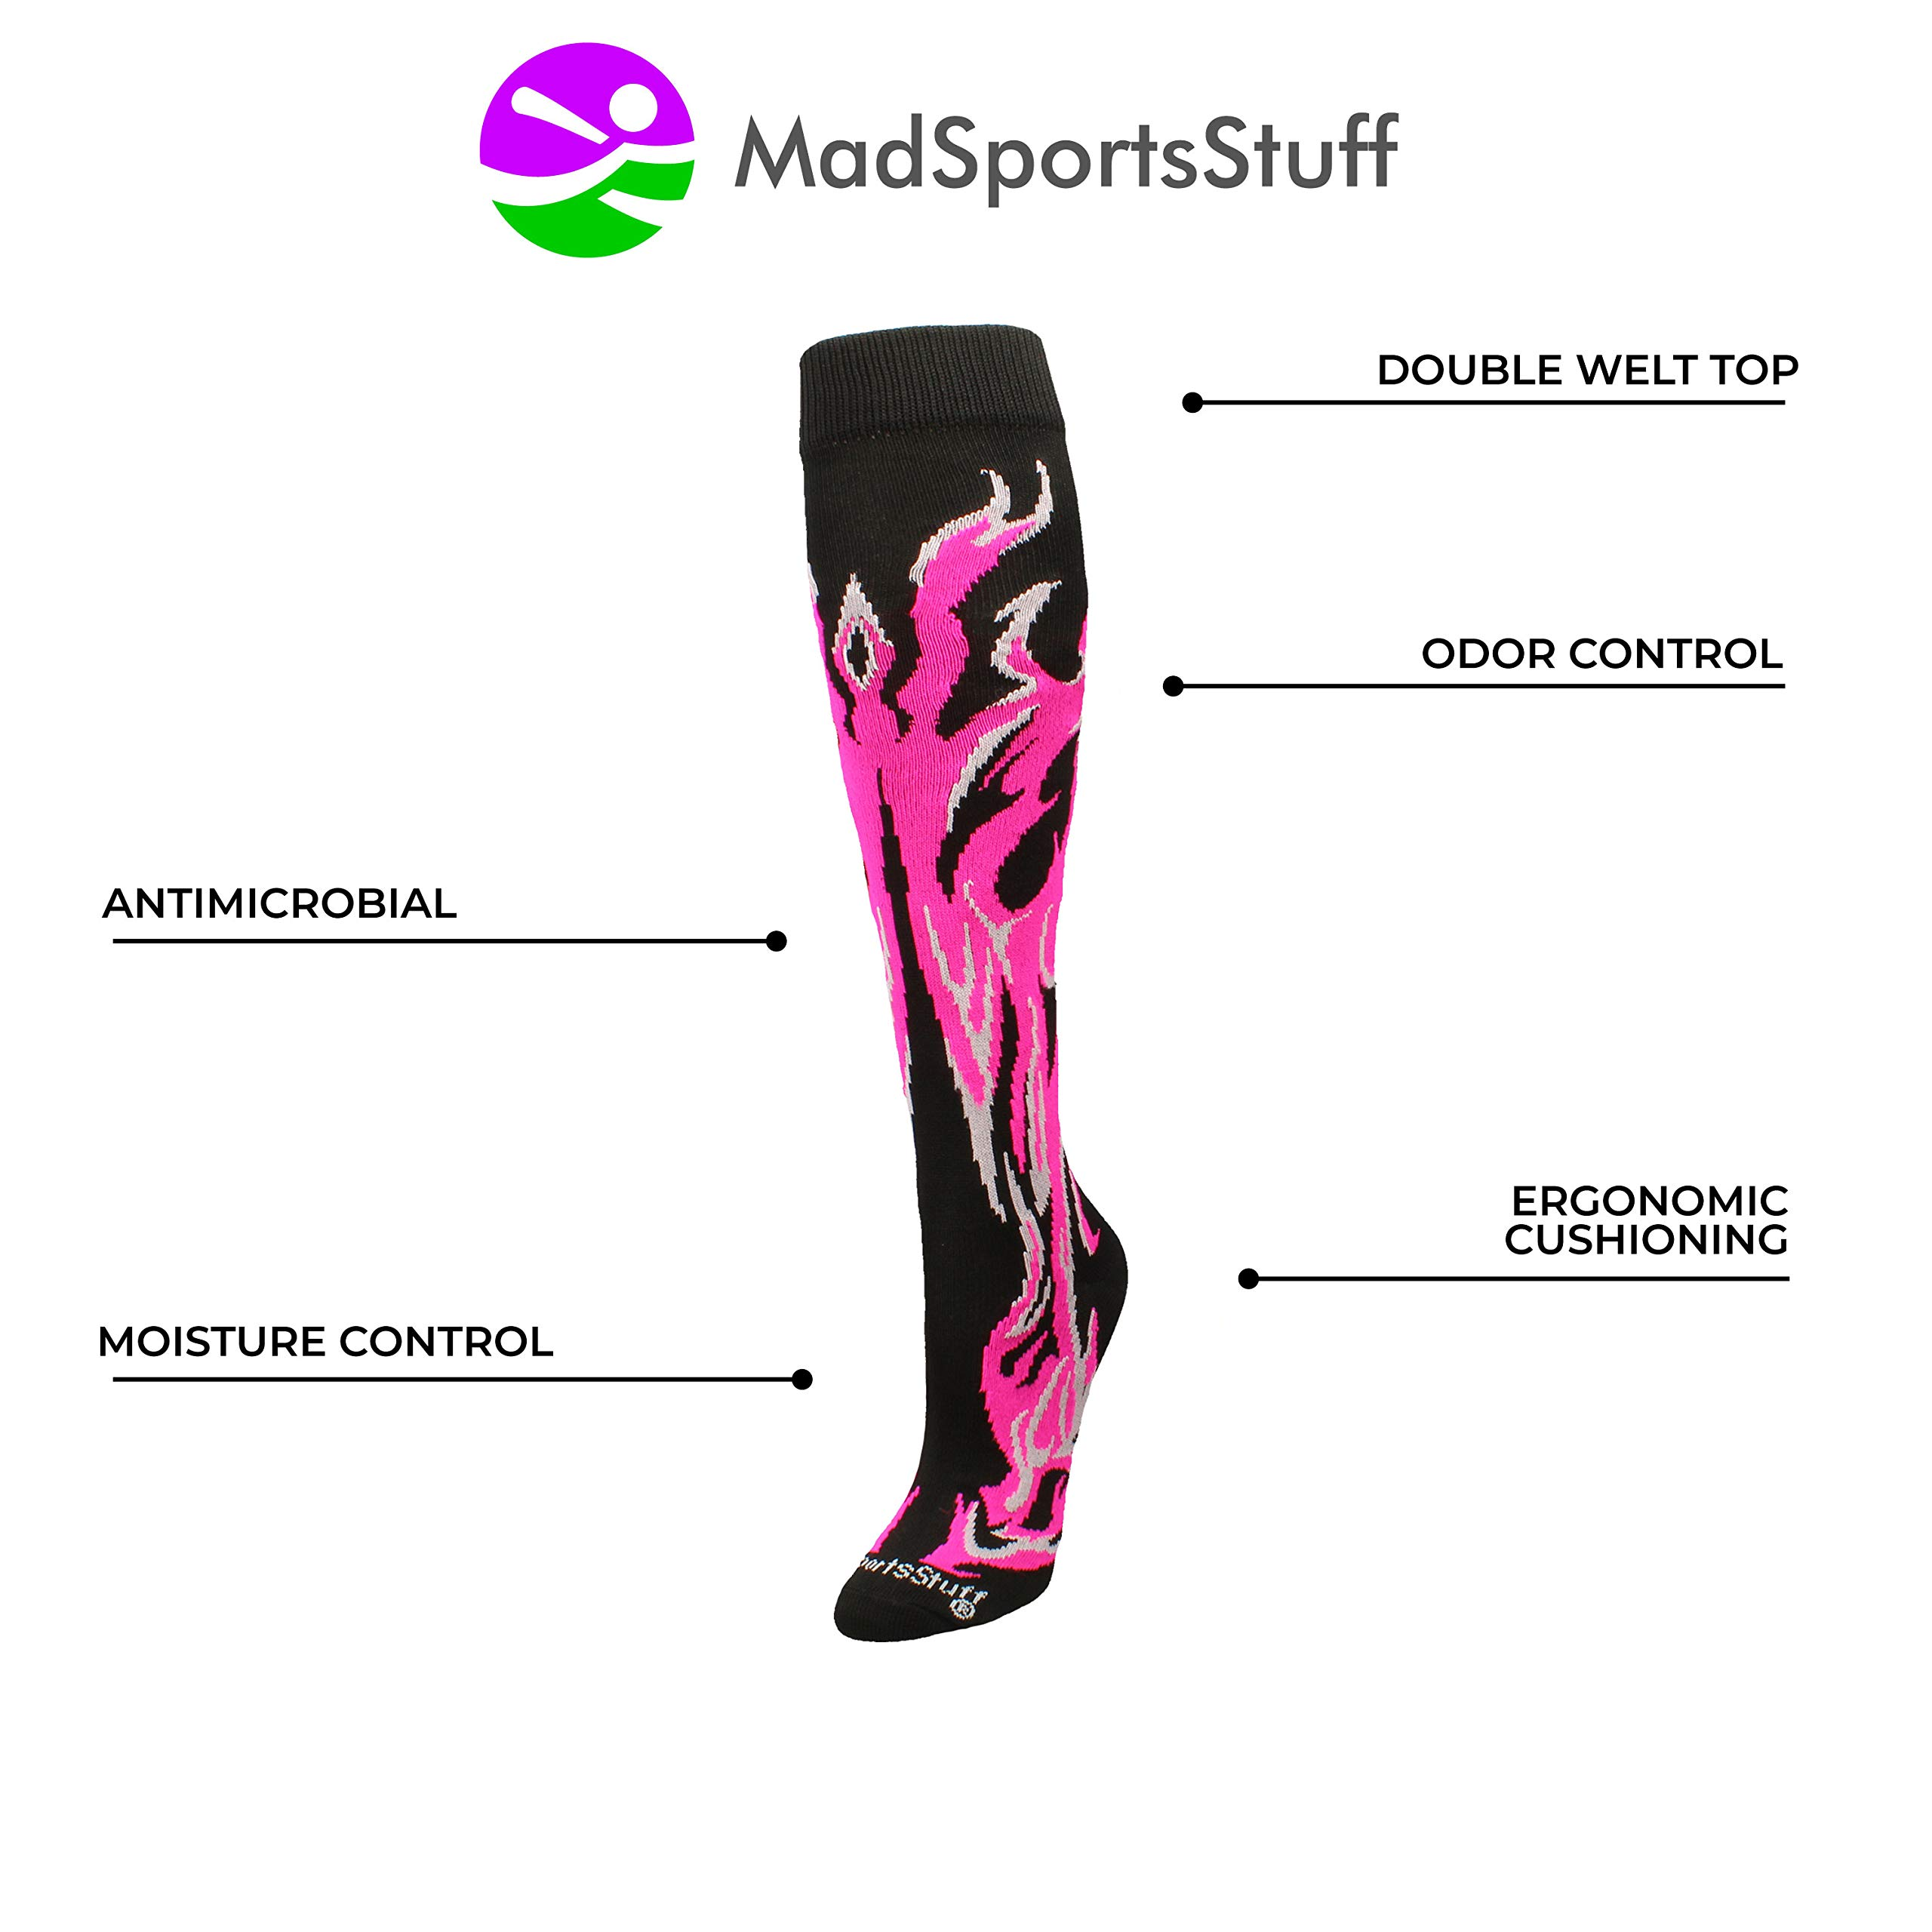 MadSportsStuff Flame Socks Athletic Over The Calf Socks (Black/Neon Pink/Pale Pink, Large) by MadSportsStuff (Image #3)